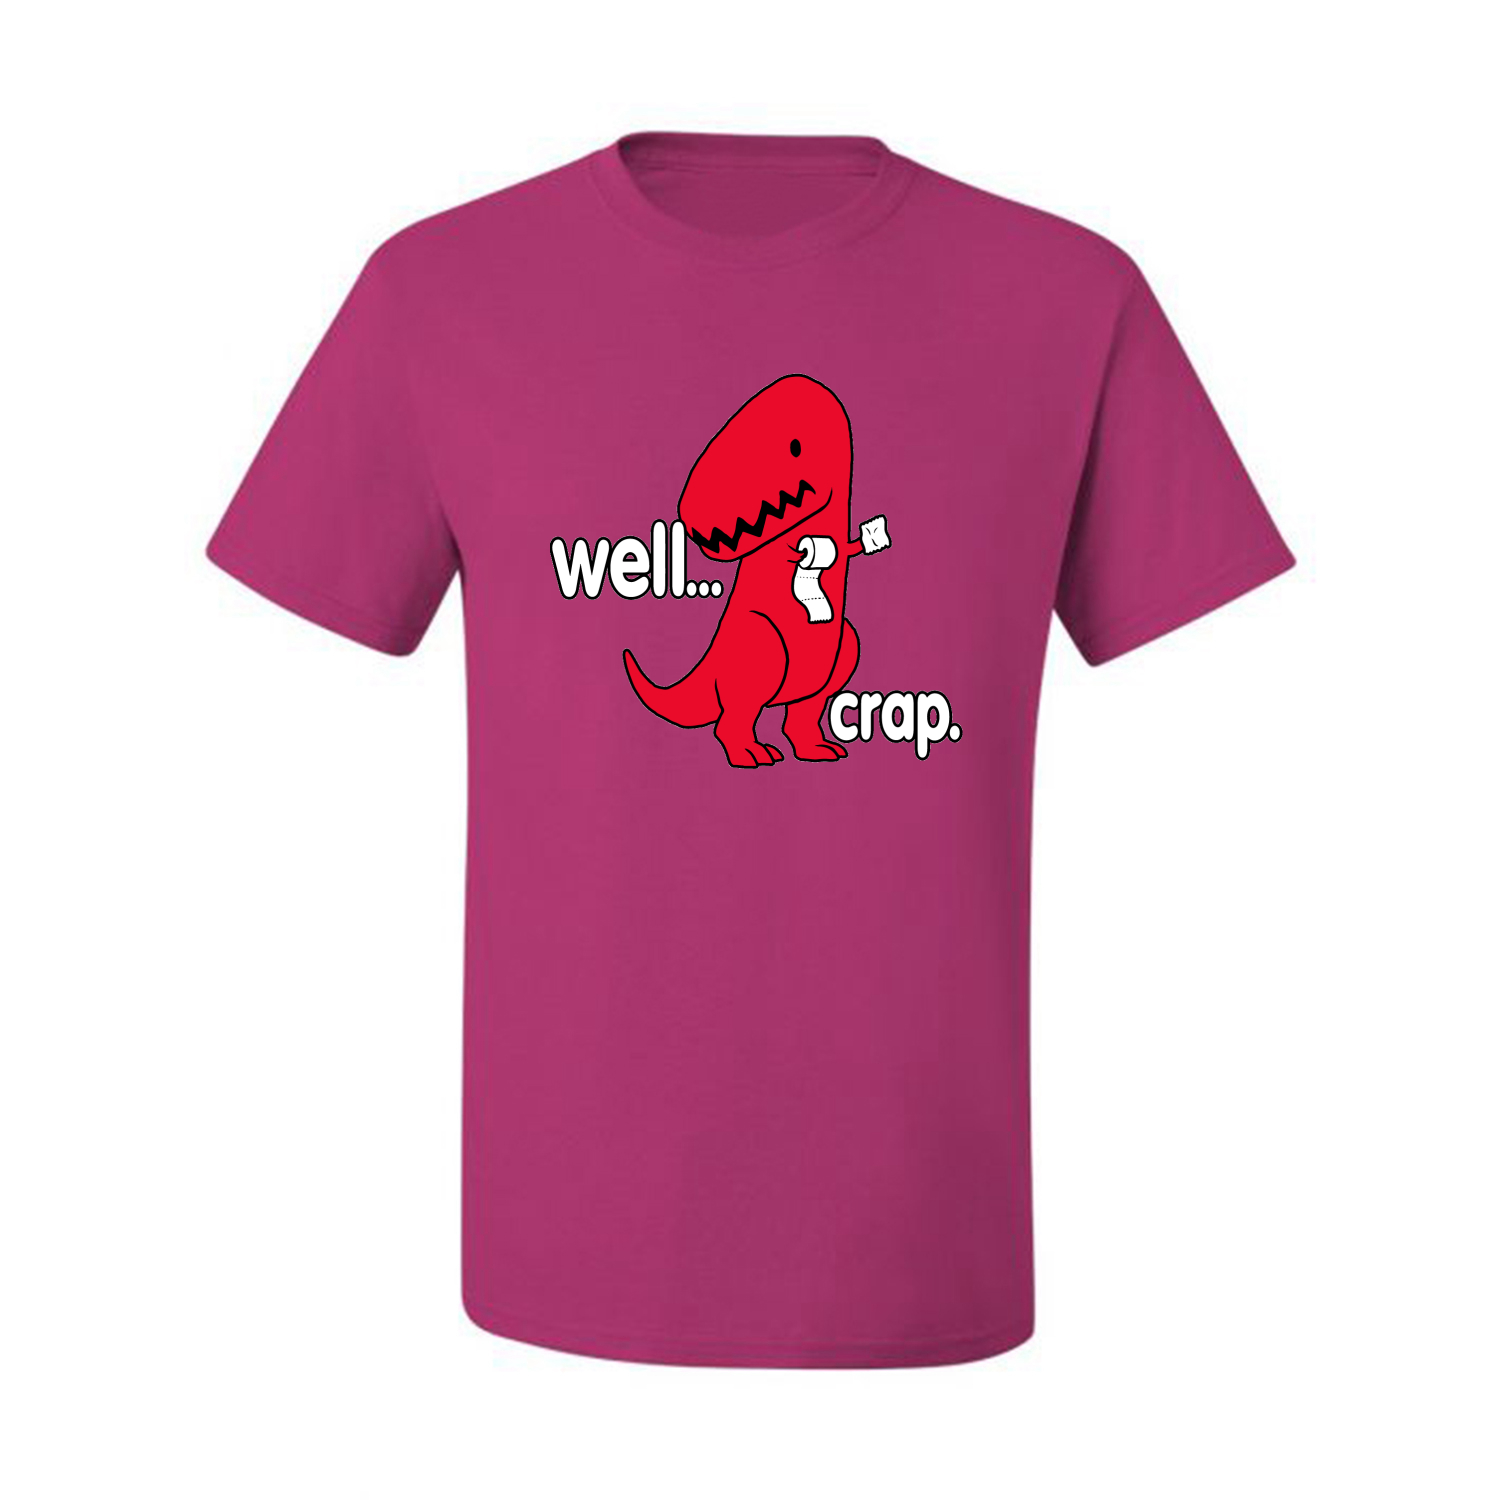 0abe0af54 Well Crap Red Dinosaur Mens Humor T-Shirt Graphic Funny Tee | eBay